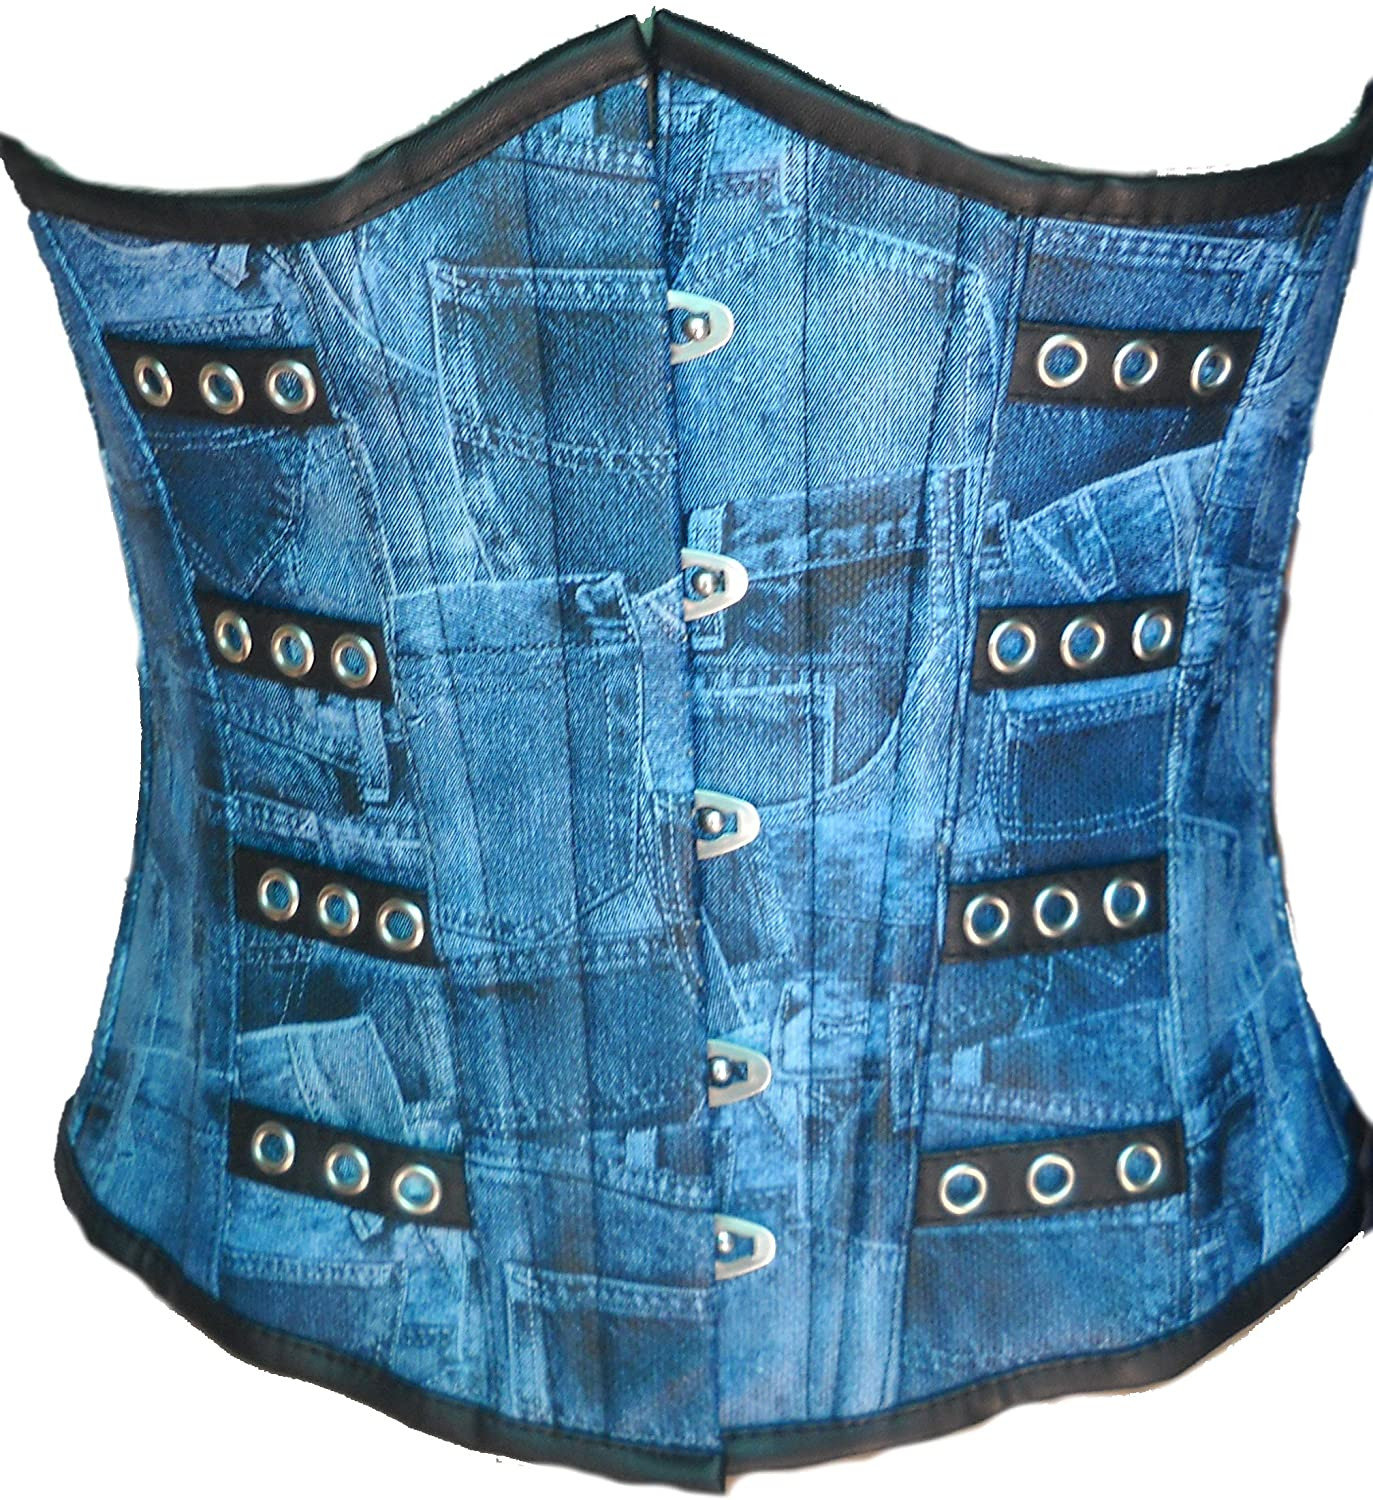 Blue Denim Print Leather Goth Steampunk Waist Training Bustier Underbust Corset